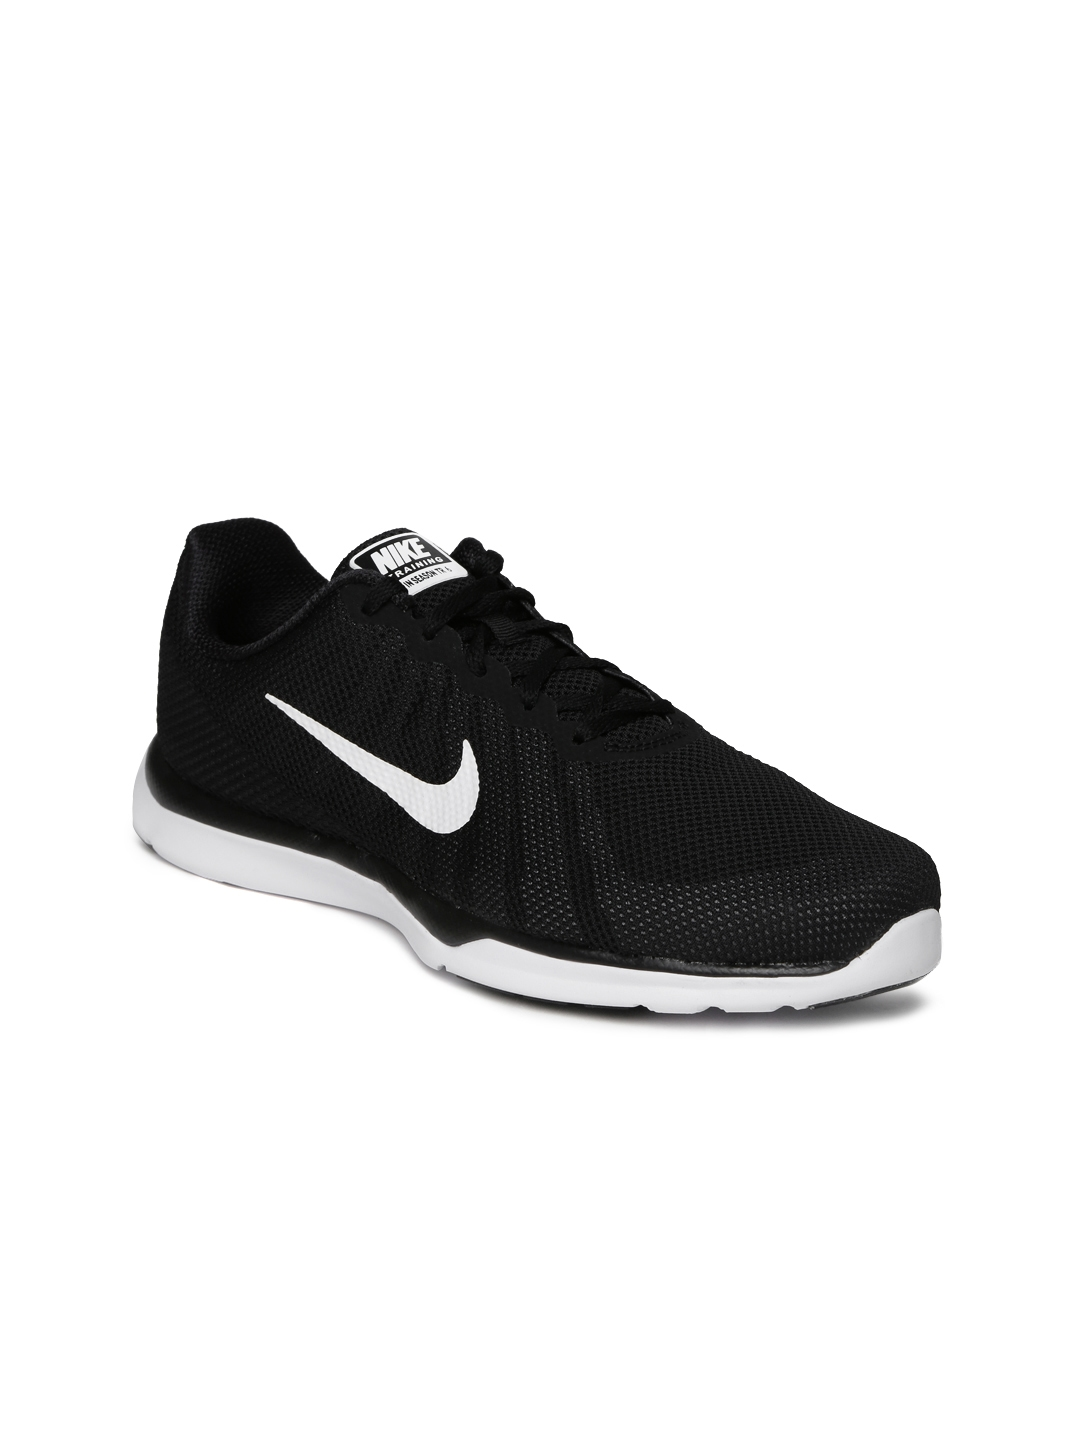 the best attitude b3db2 d6b4c Nike Women Black In-Season TR 6 Training Shoes